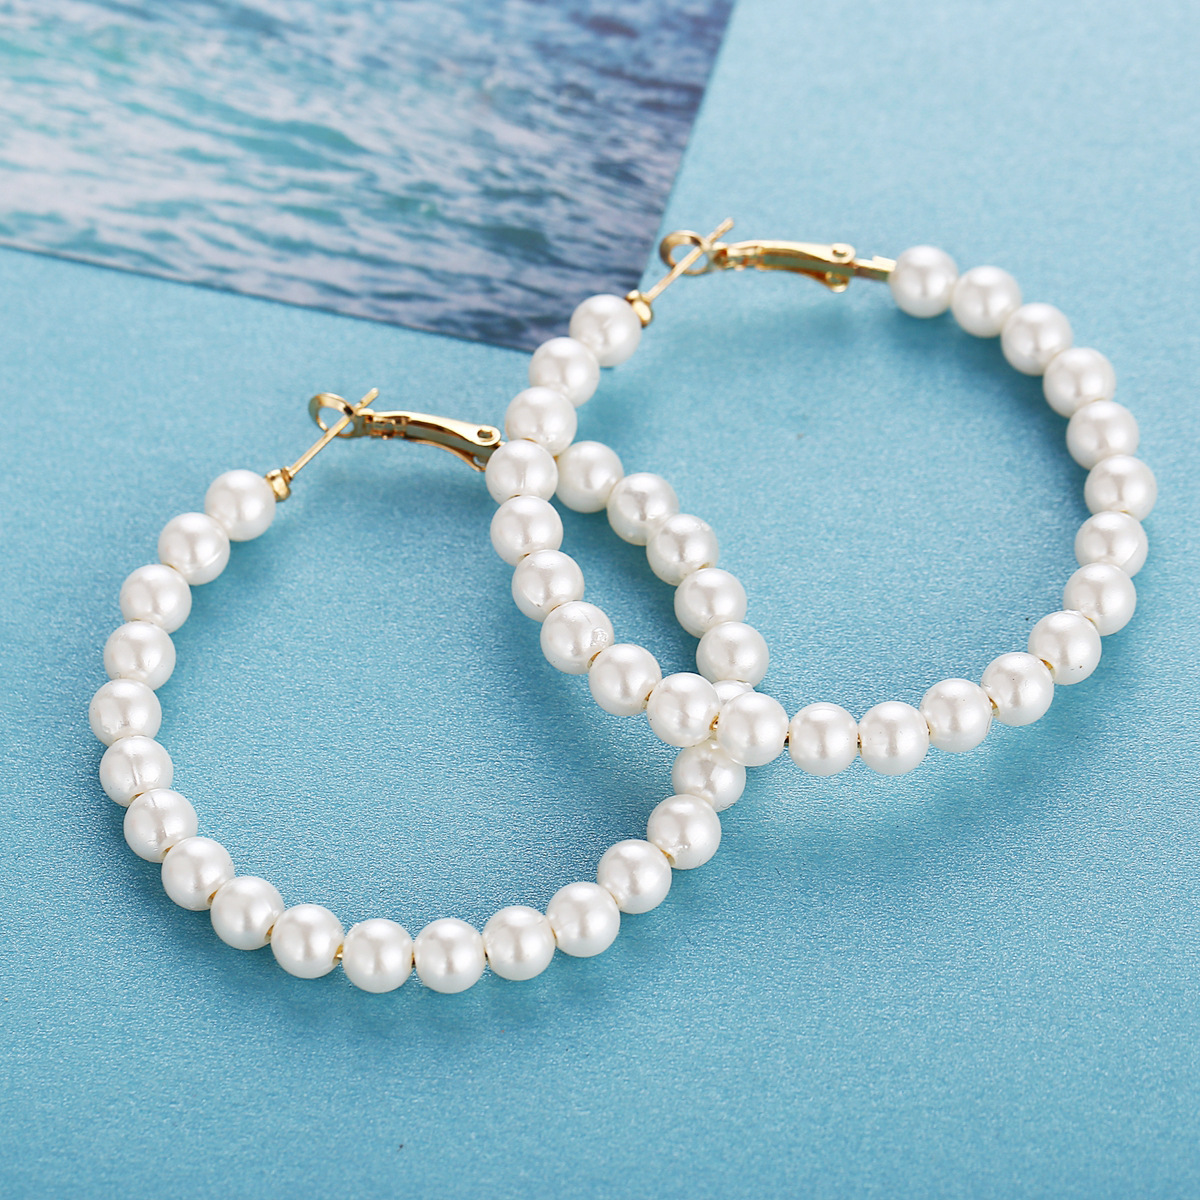 Creative retro simple earrings for new artificial pearl earrings wholesales fashion NHPJ201419